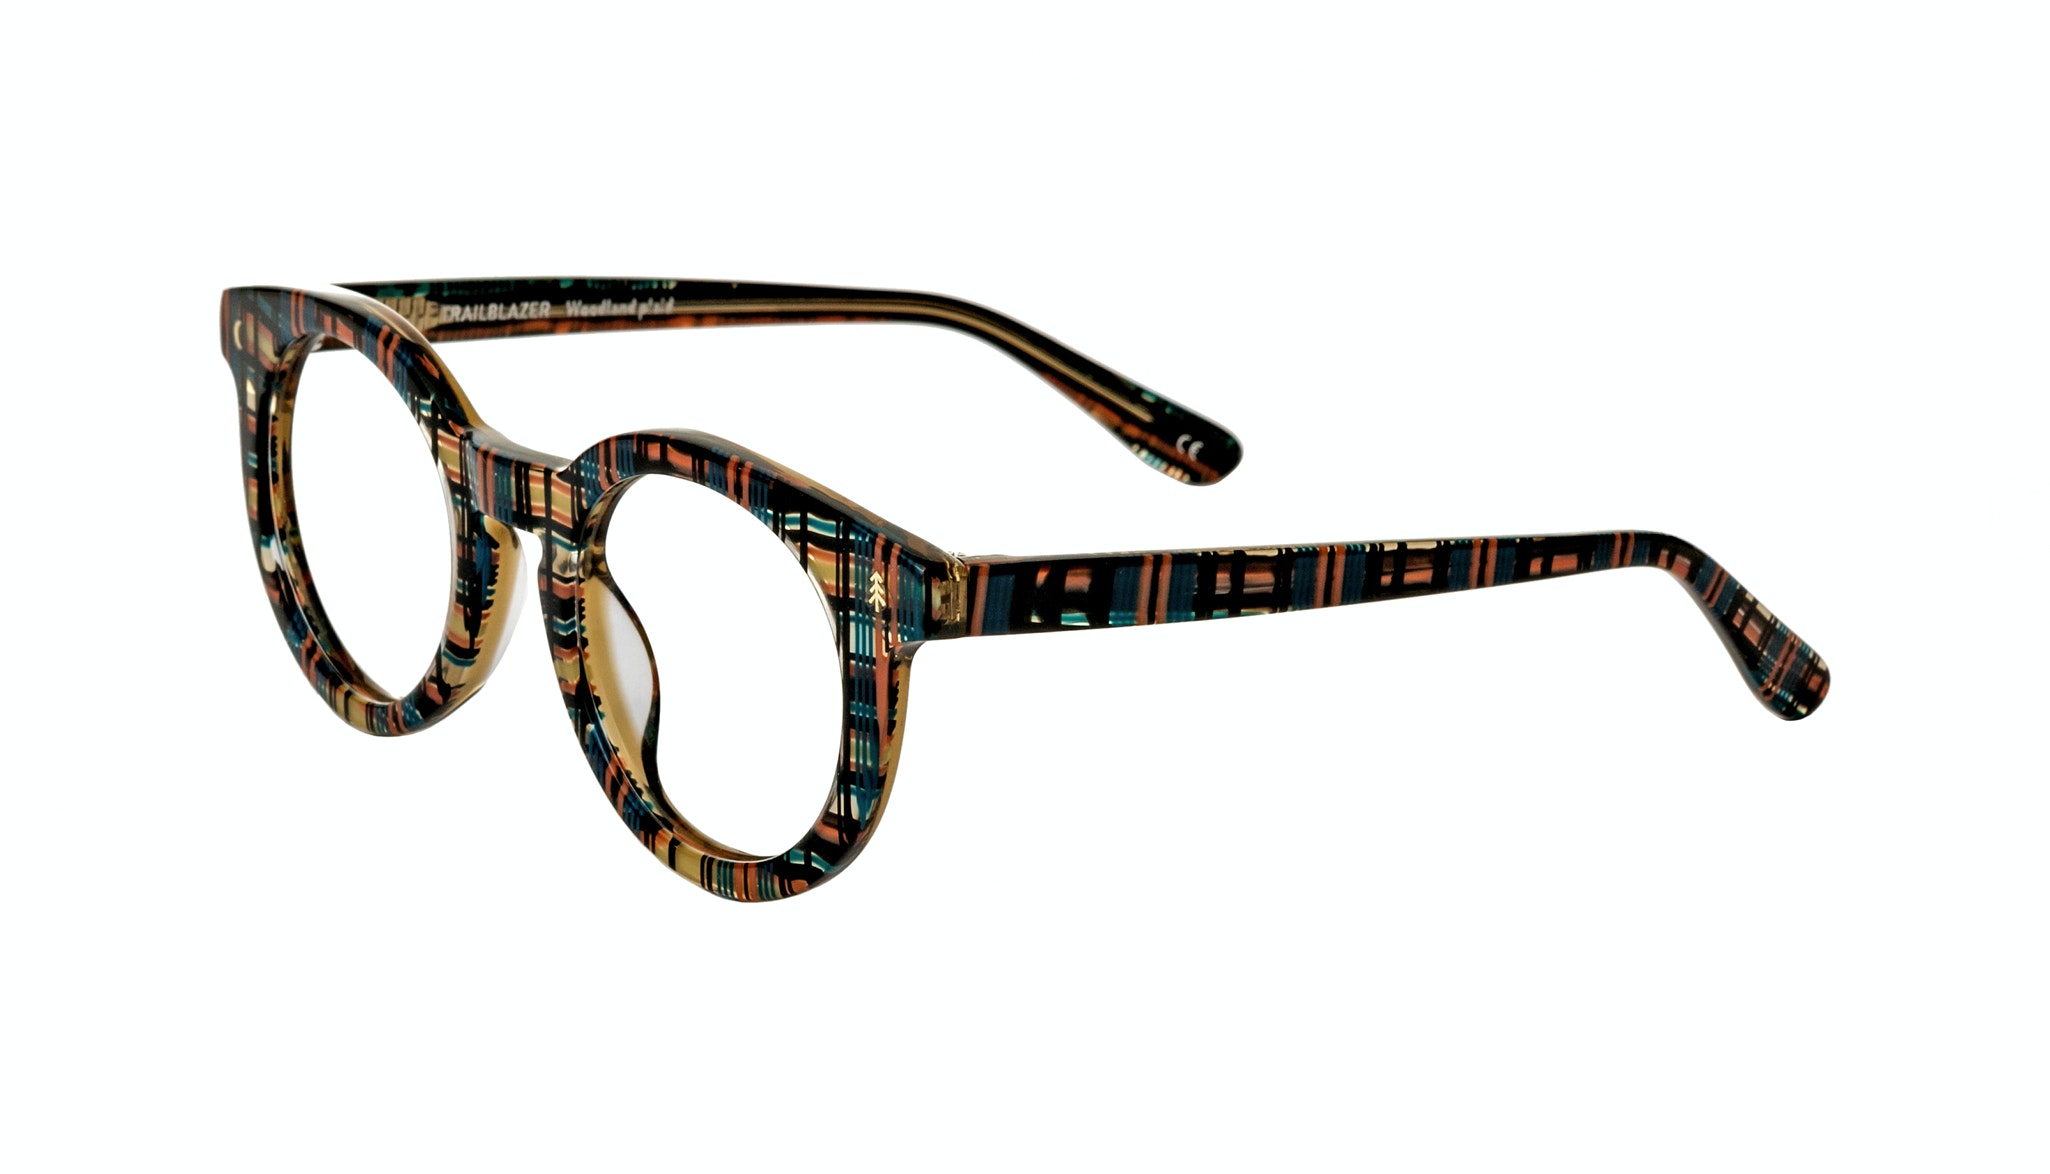 Affordable Fashion Glasses Round Eyeglasses Women Trailblazer Woodland Plaid Tilt